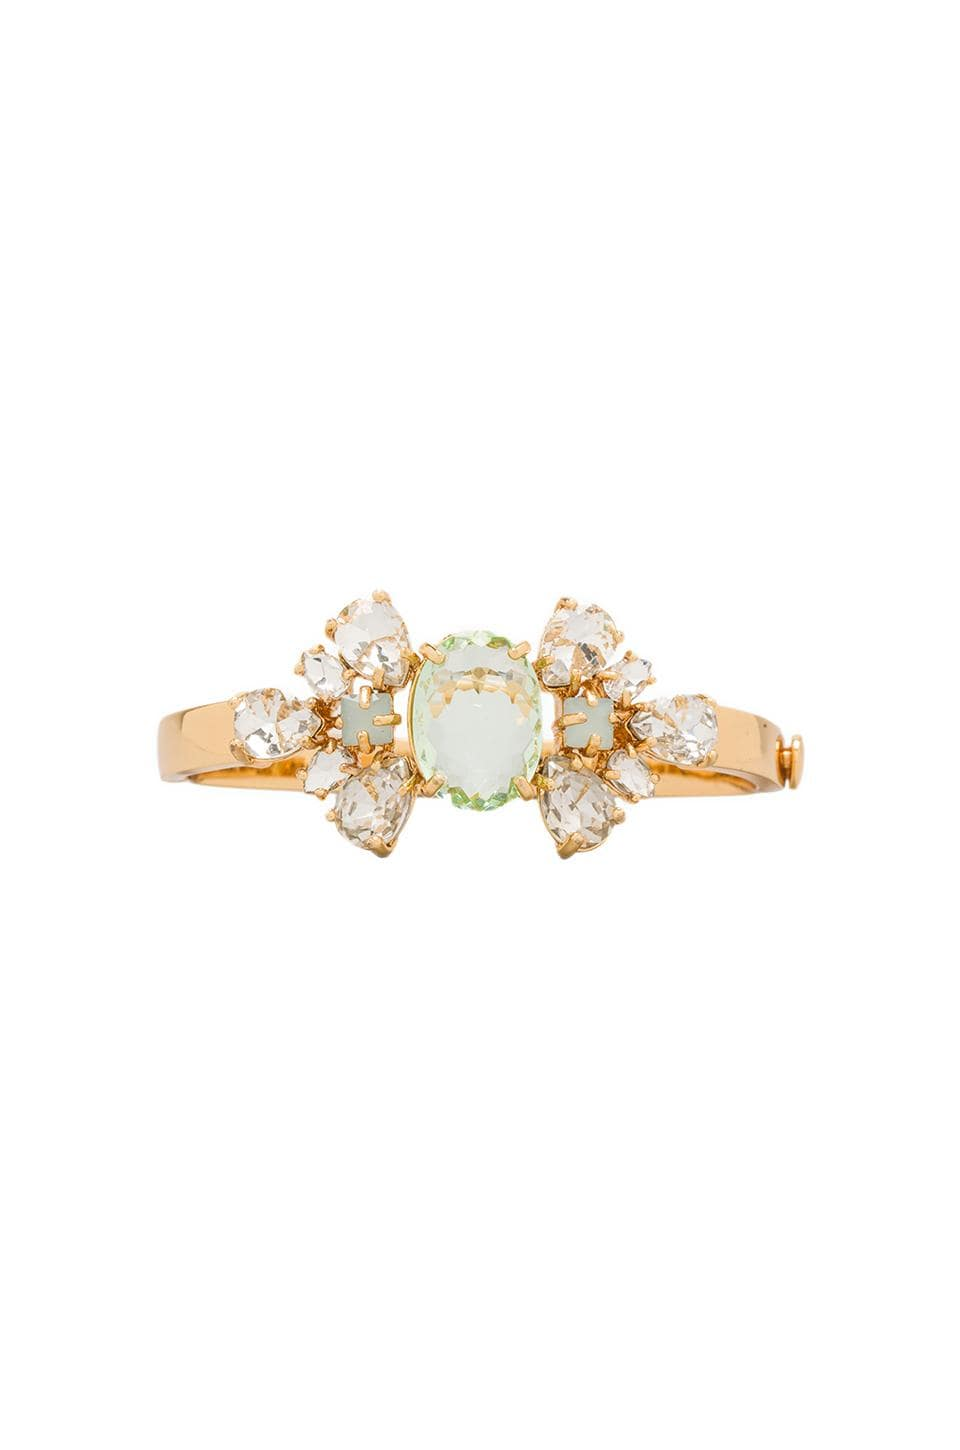 Juicy Couture Pear Cut Cluster Hinged Bangle in Gold